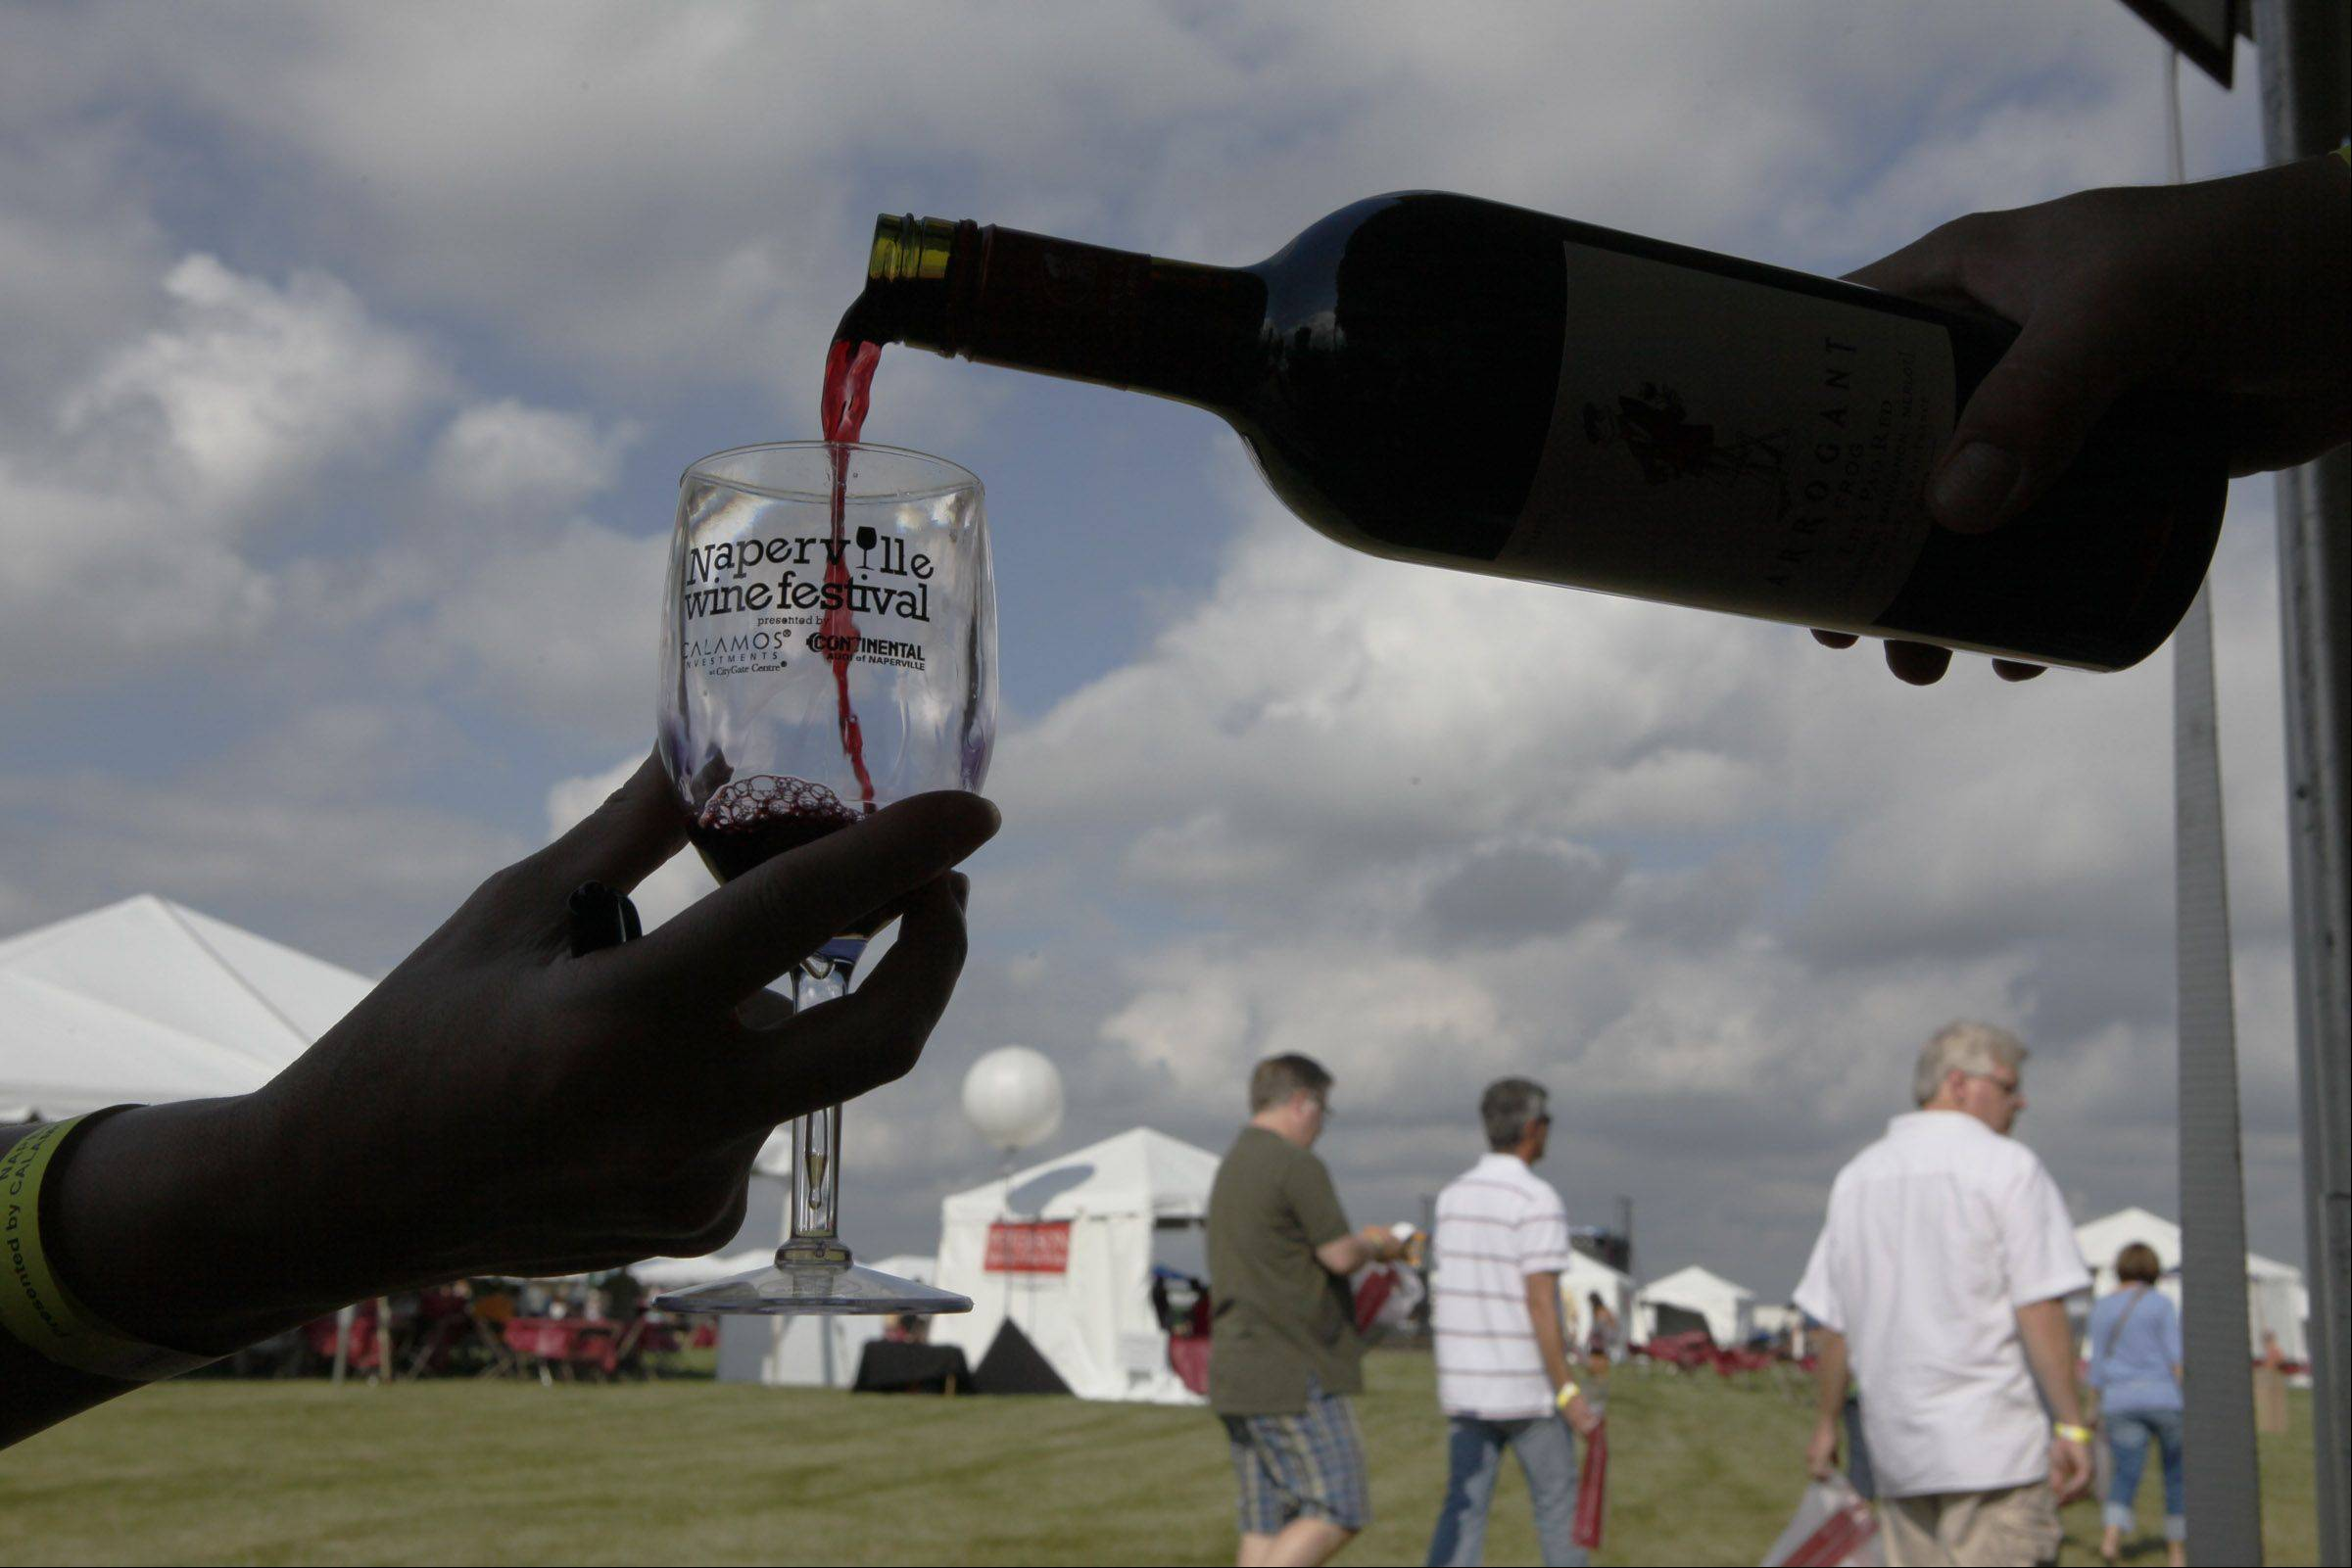 The Naperville Wine Festival opens Friday, Aug. 24, at CityGate Centre in Naperville.